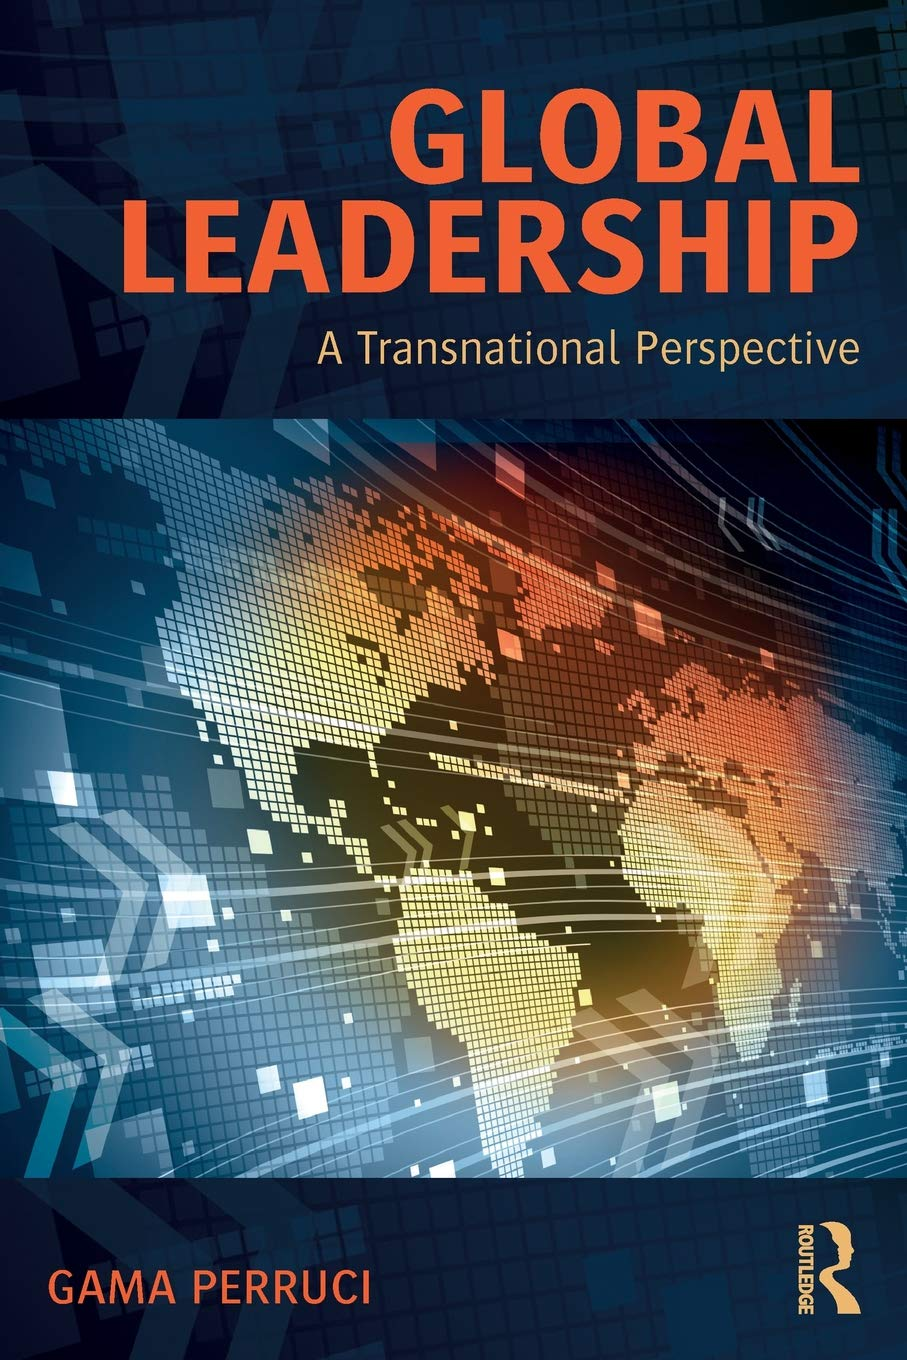 Image OfGlobal Leadership: A Transnational Perspective